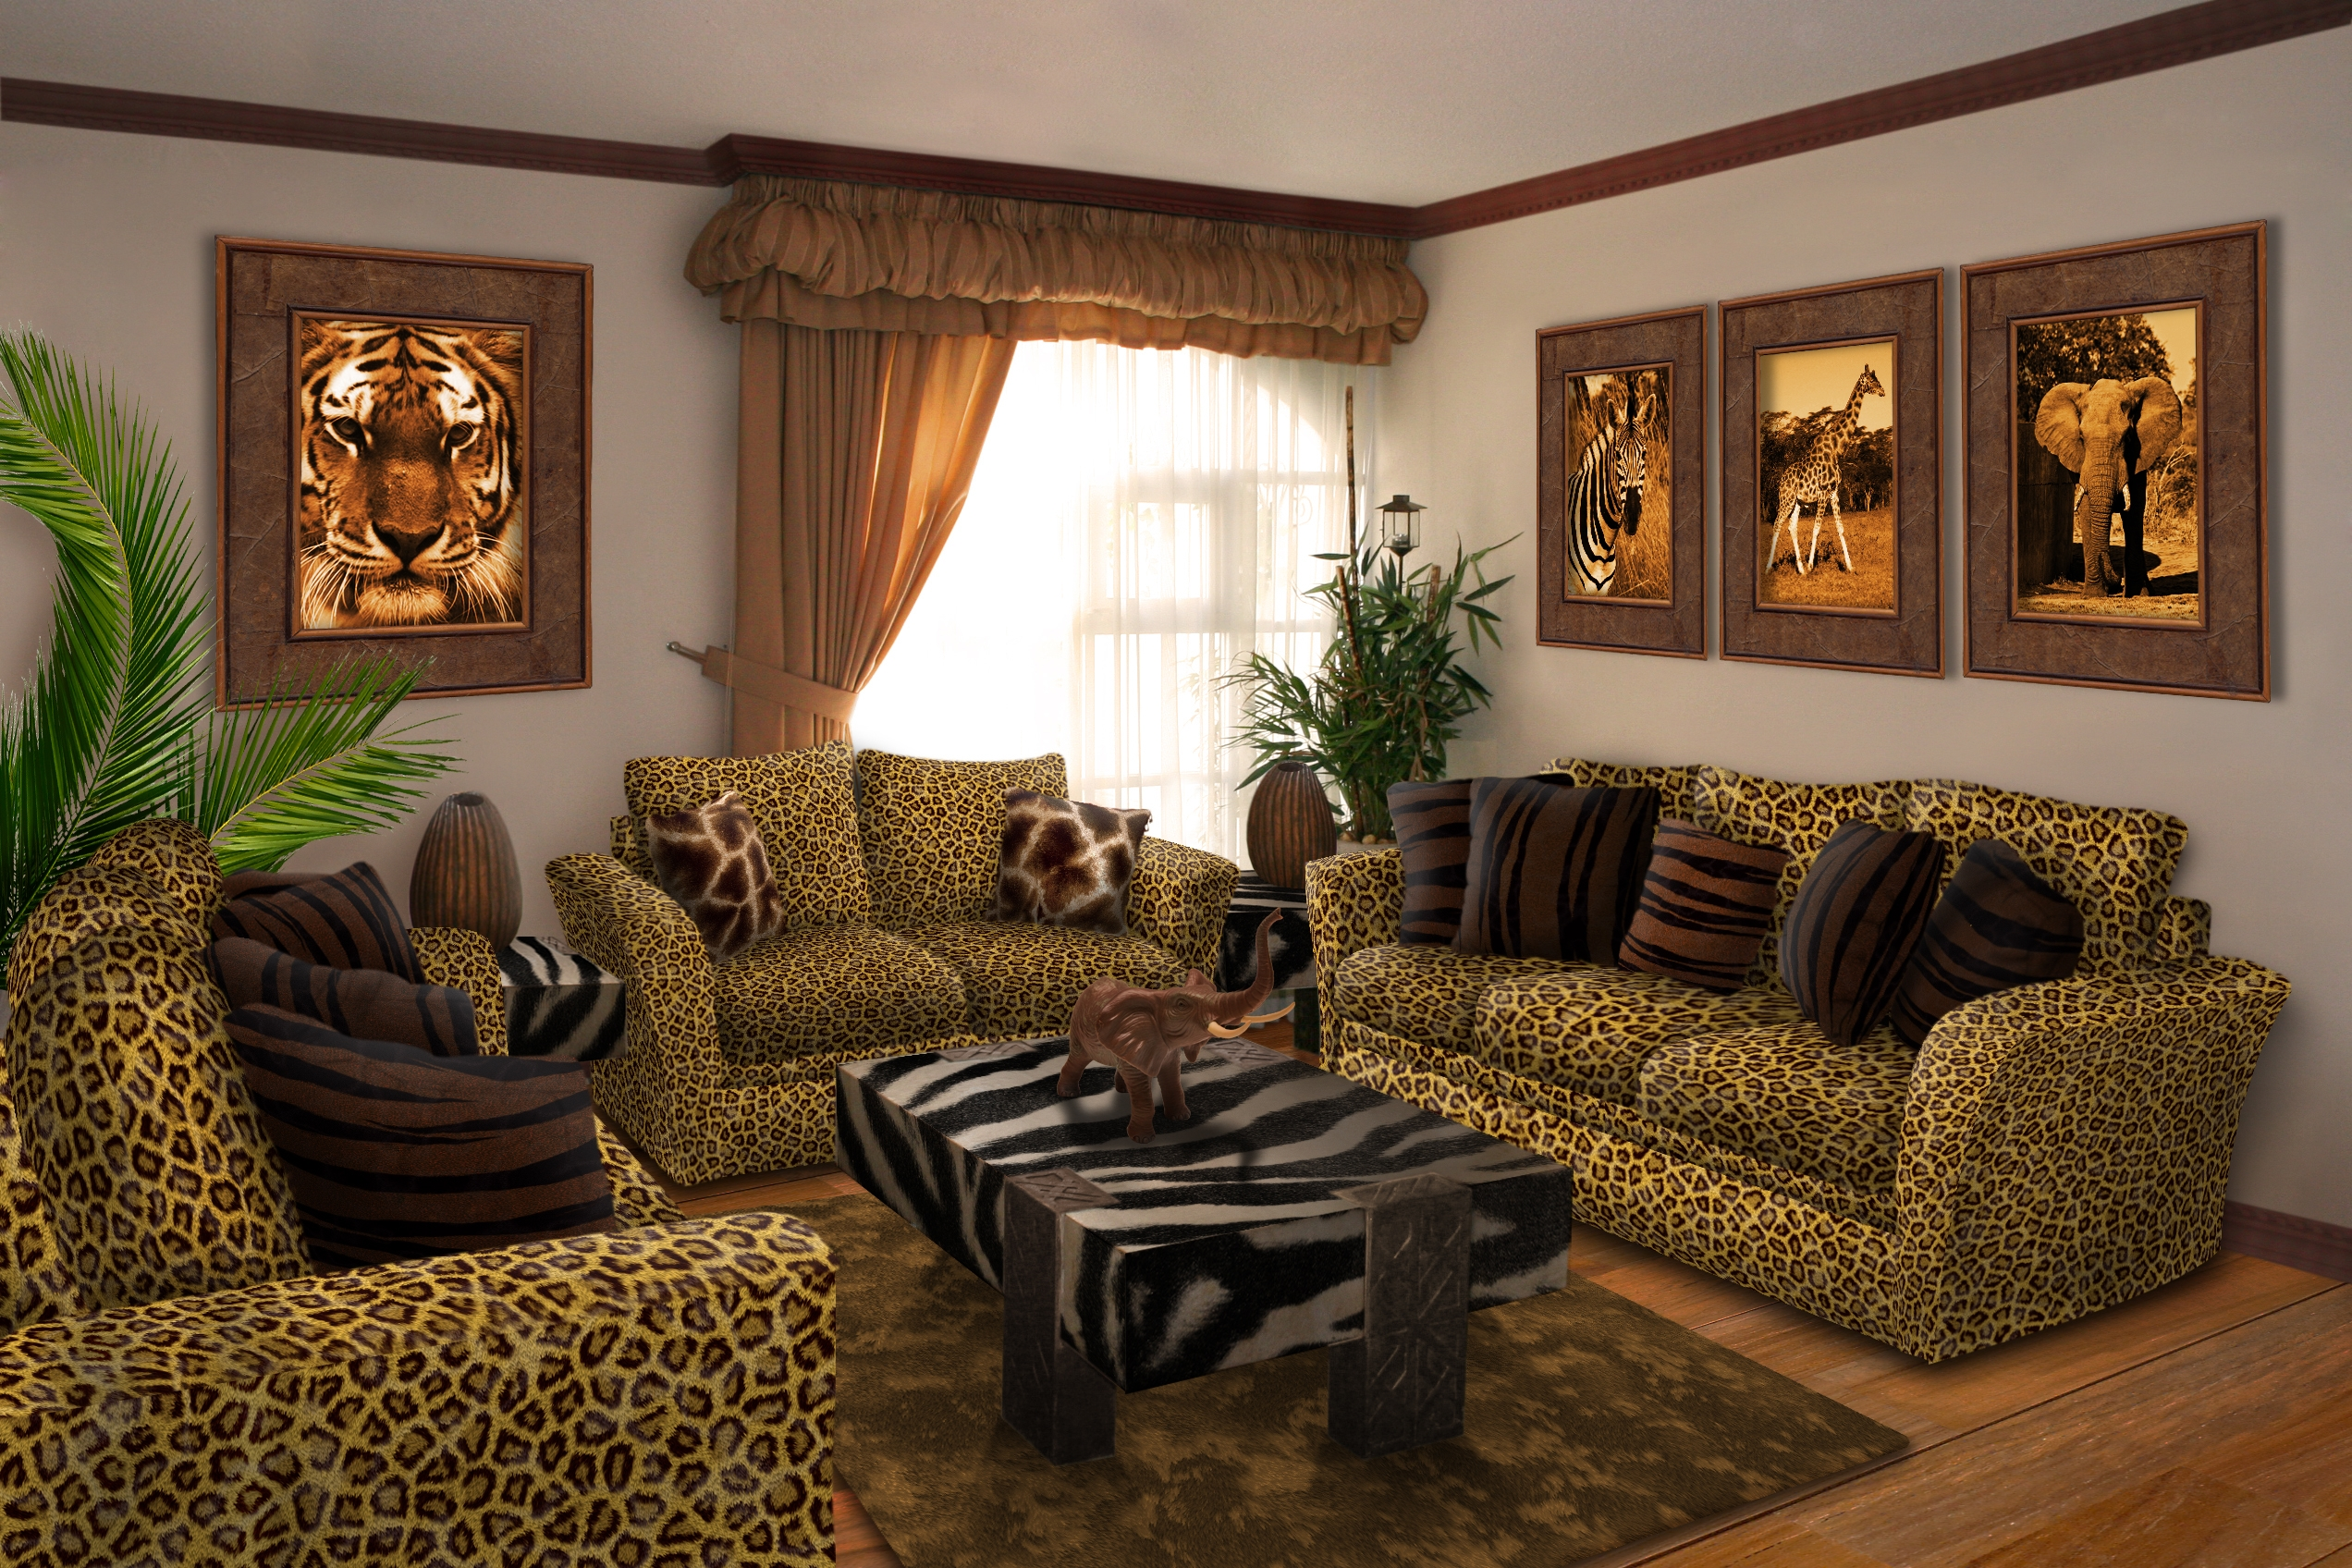 Safari living room picture by andrej2249 for interior for Jungle living room ideas